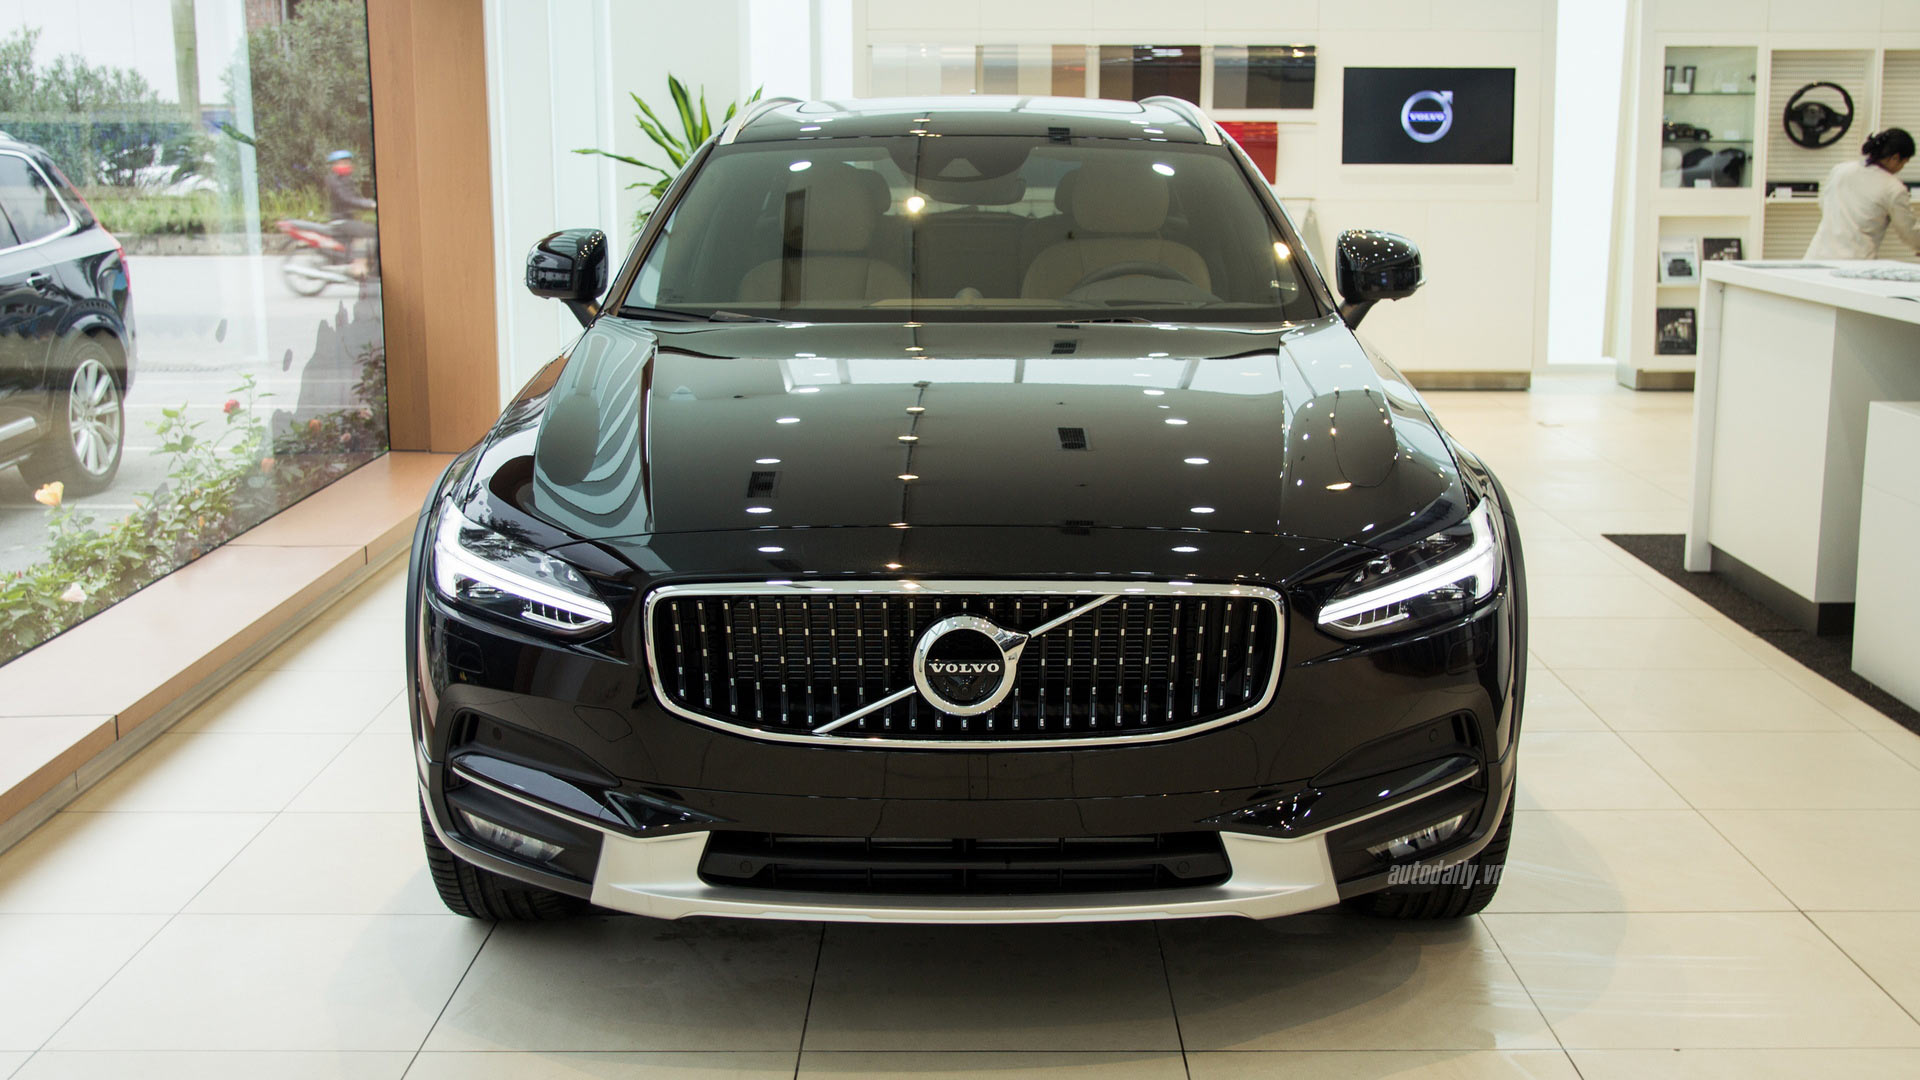 volvo-v90-cross-country-ngoai-that-05.jpg